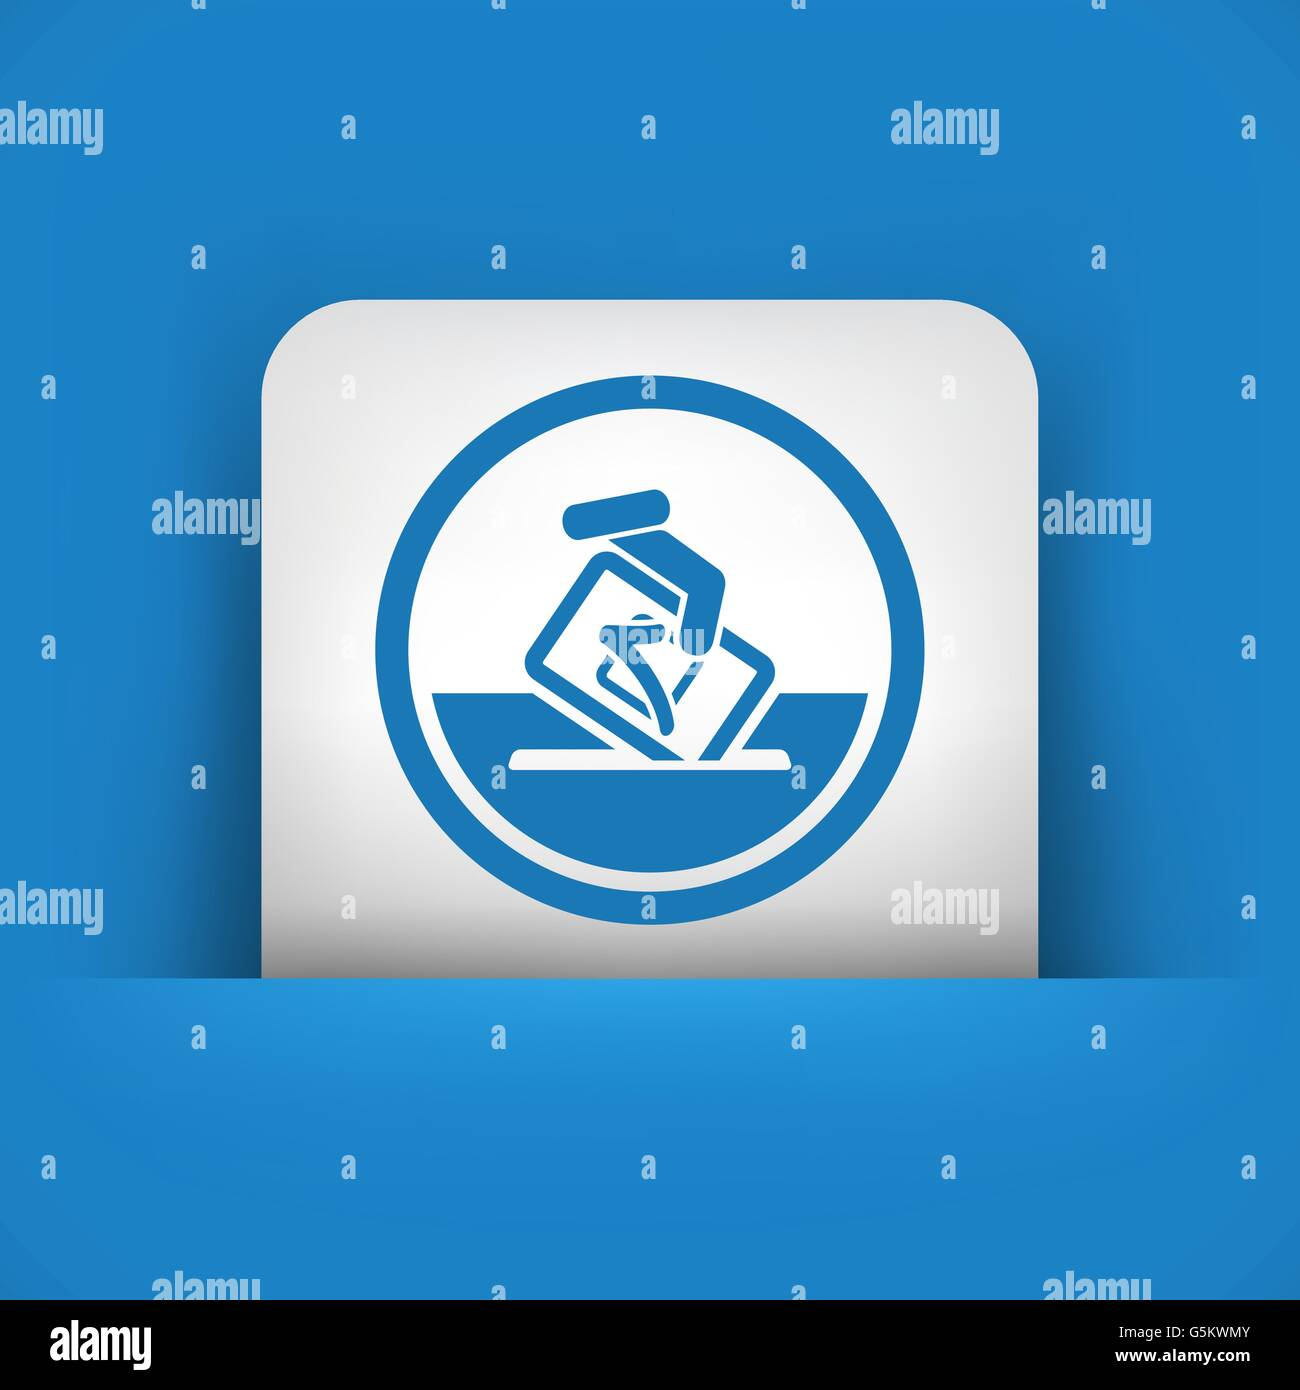 Vote symbol icon Stock Vector